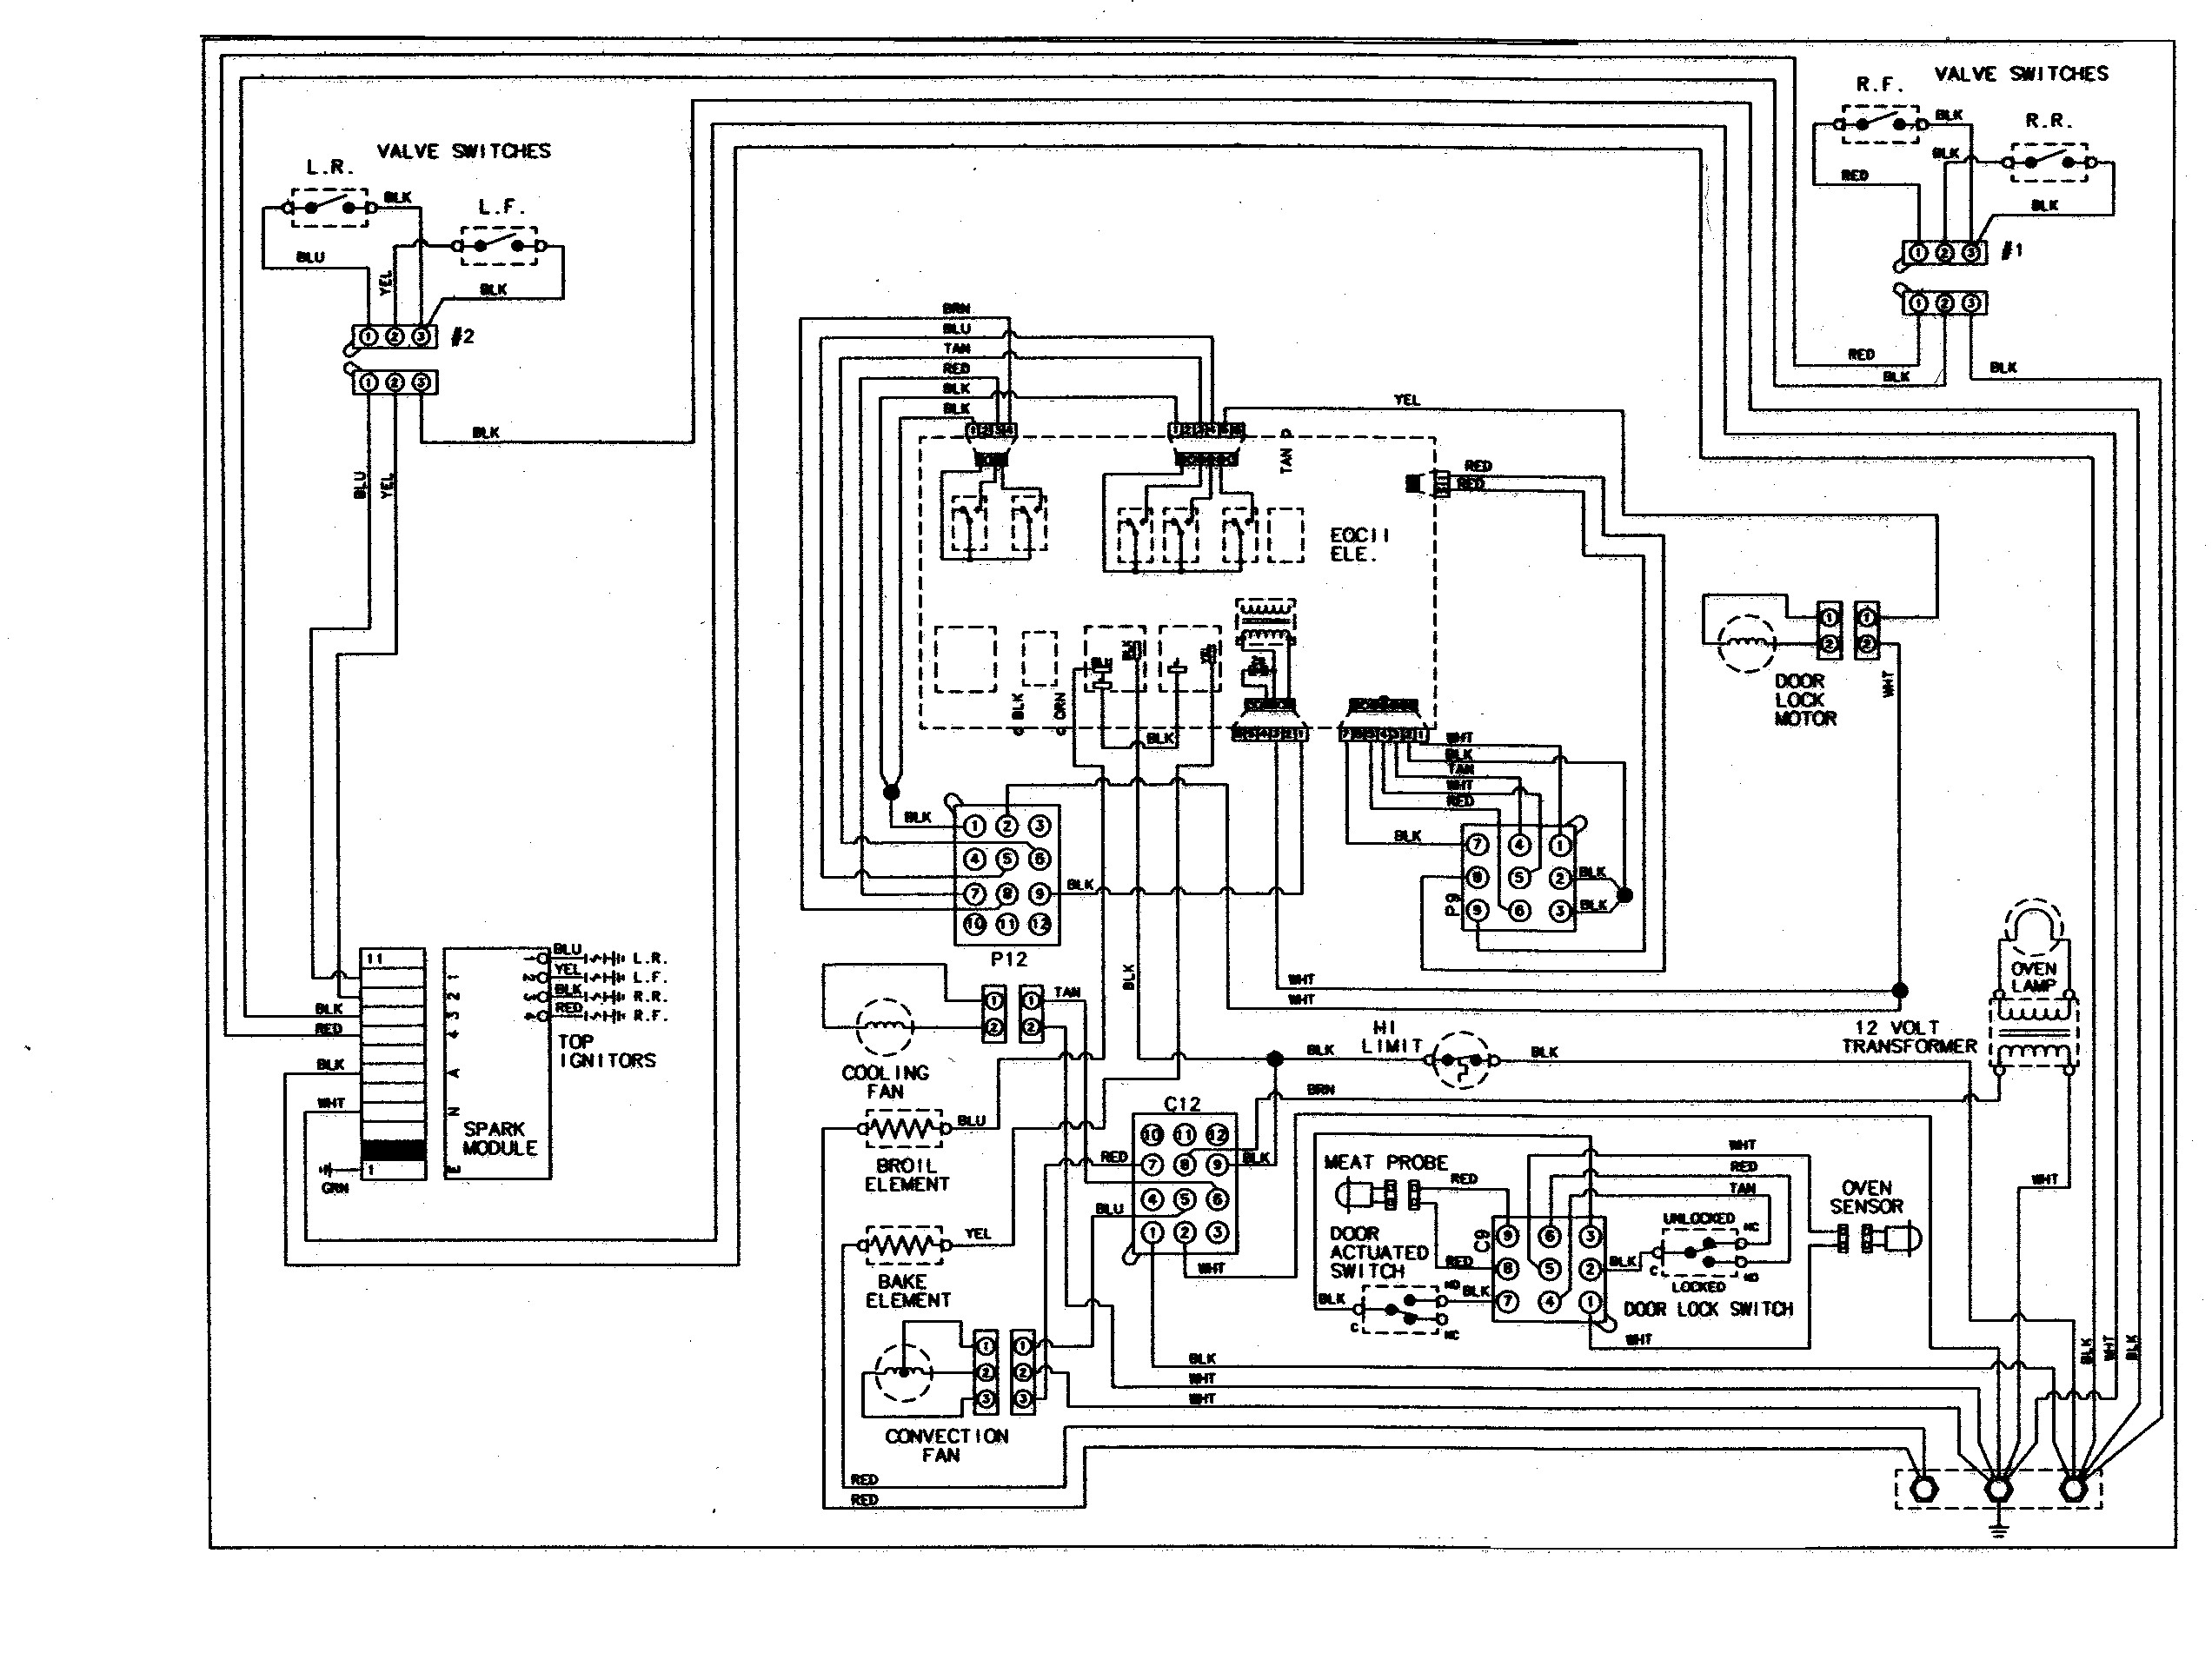 "Whirlpool Electric Range Wiring Schematic | Wiring Diagram on john deere riding mower diagram, john deere chassis, john deere repair diagrams, john deere 212 diagram, john deere 3020 diagram, john deere sabre mower belt diagram, john deere starters diagrams, john deere voltage regulator wiring, john deere fuse box diagram, john deere power beyond diagram, john deere cylinder head, john deere fuel gauge wiring, john deere 310e backhoe problems, john deere tractor wiring, john deere rear end diagrams, john deere gt235 diagram, john deere electrical diagrams, john deere 42"" deck diagrams, john deere 345 diagram, john deere fuel system diagram,"